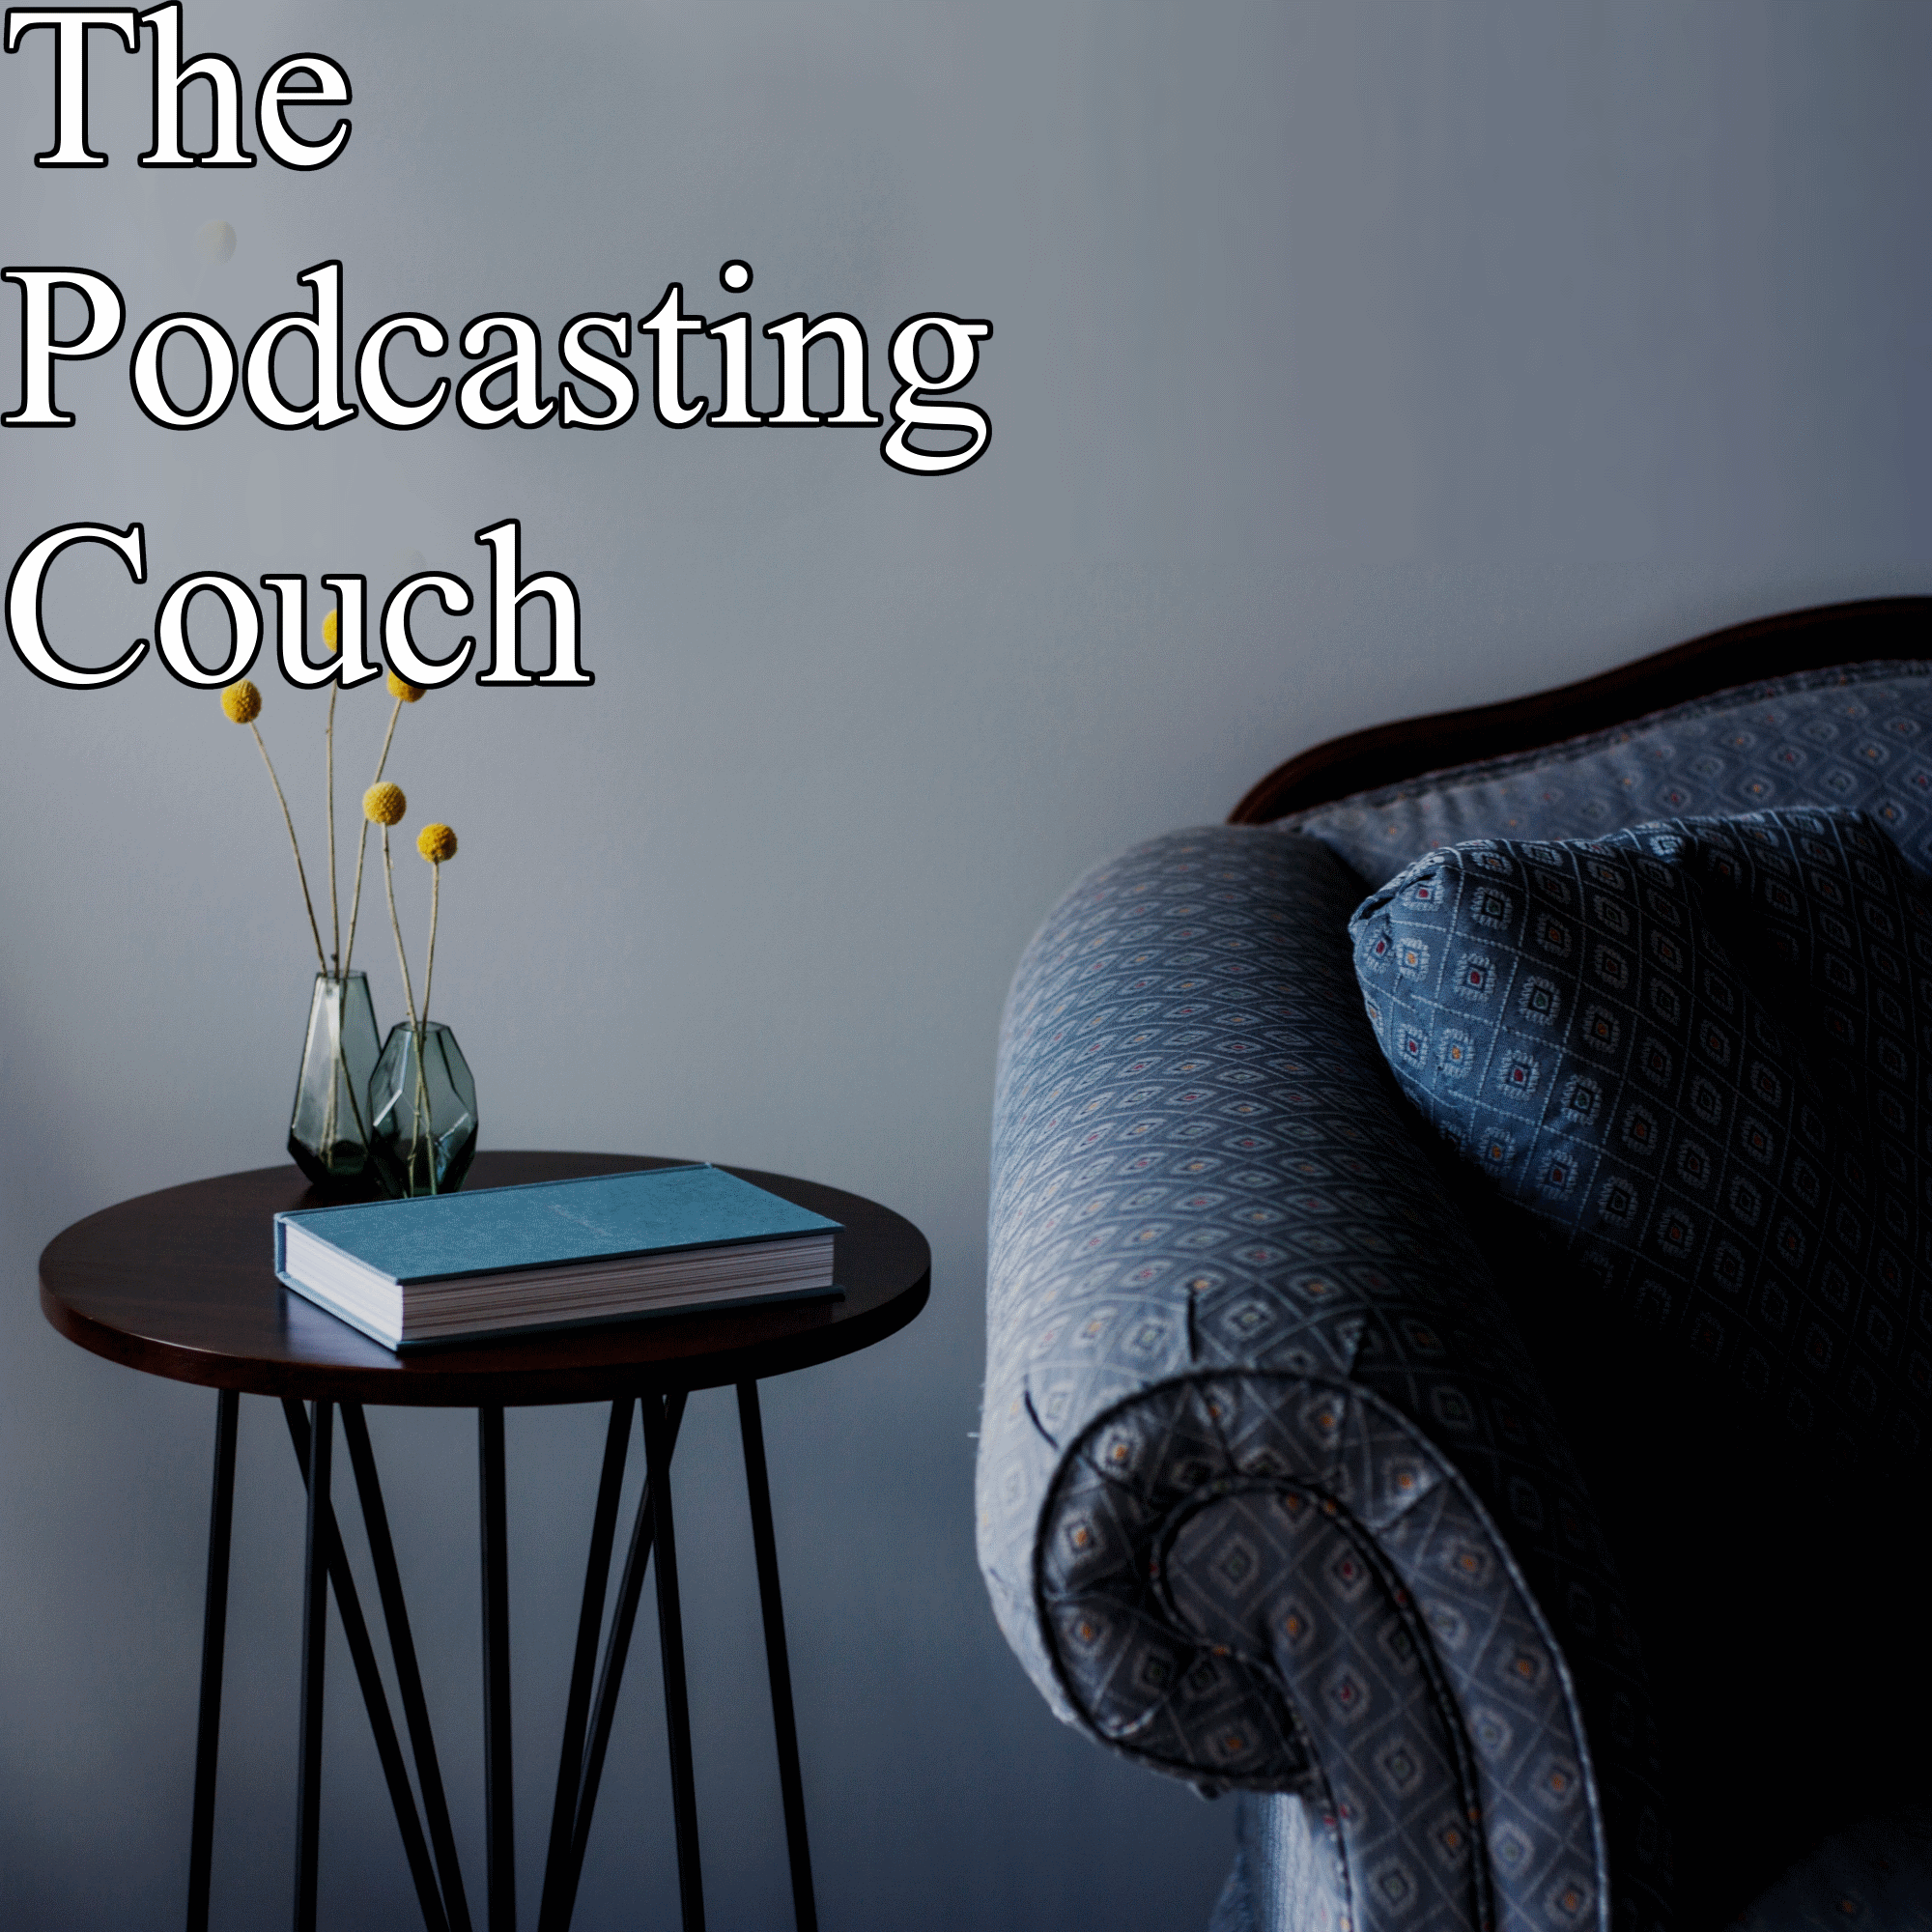 The Podcasting Couch